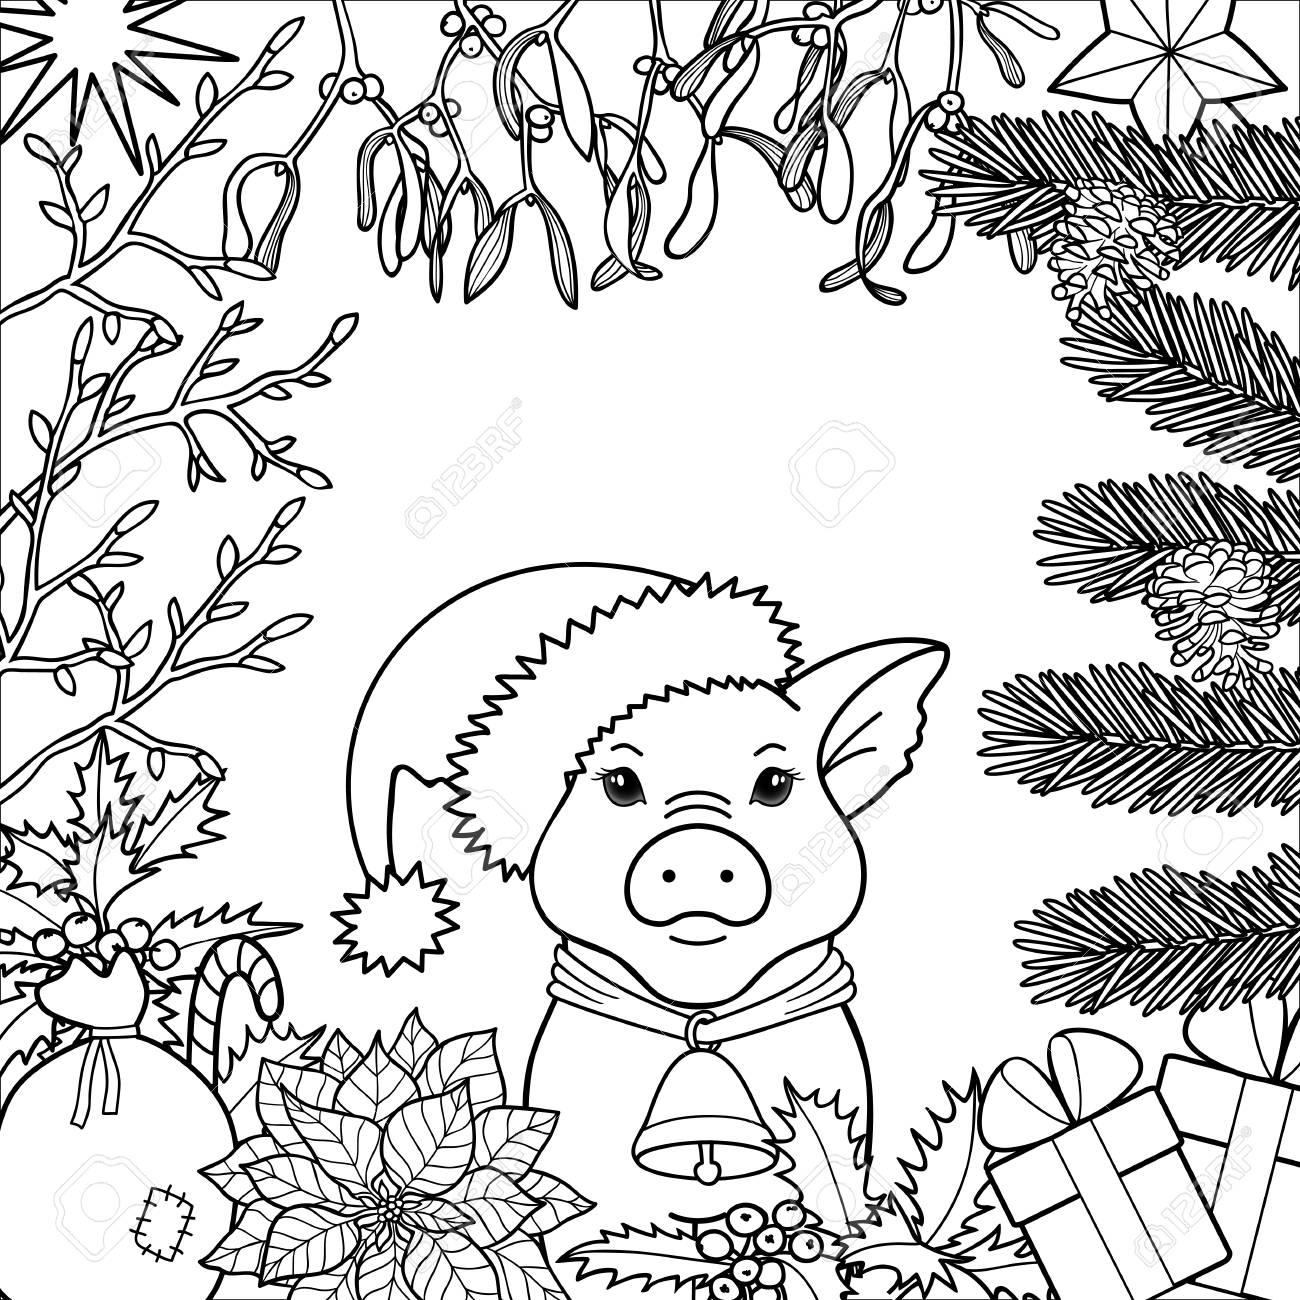 Winter Holiday Coloring Page With Pig Symbol 2019. Black And ...